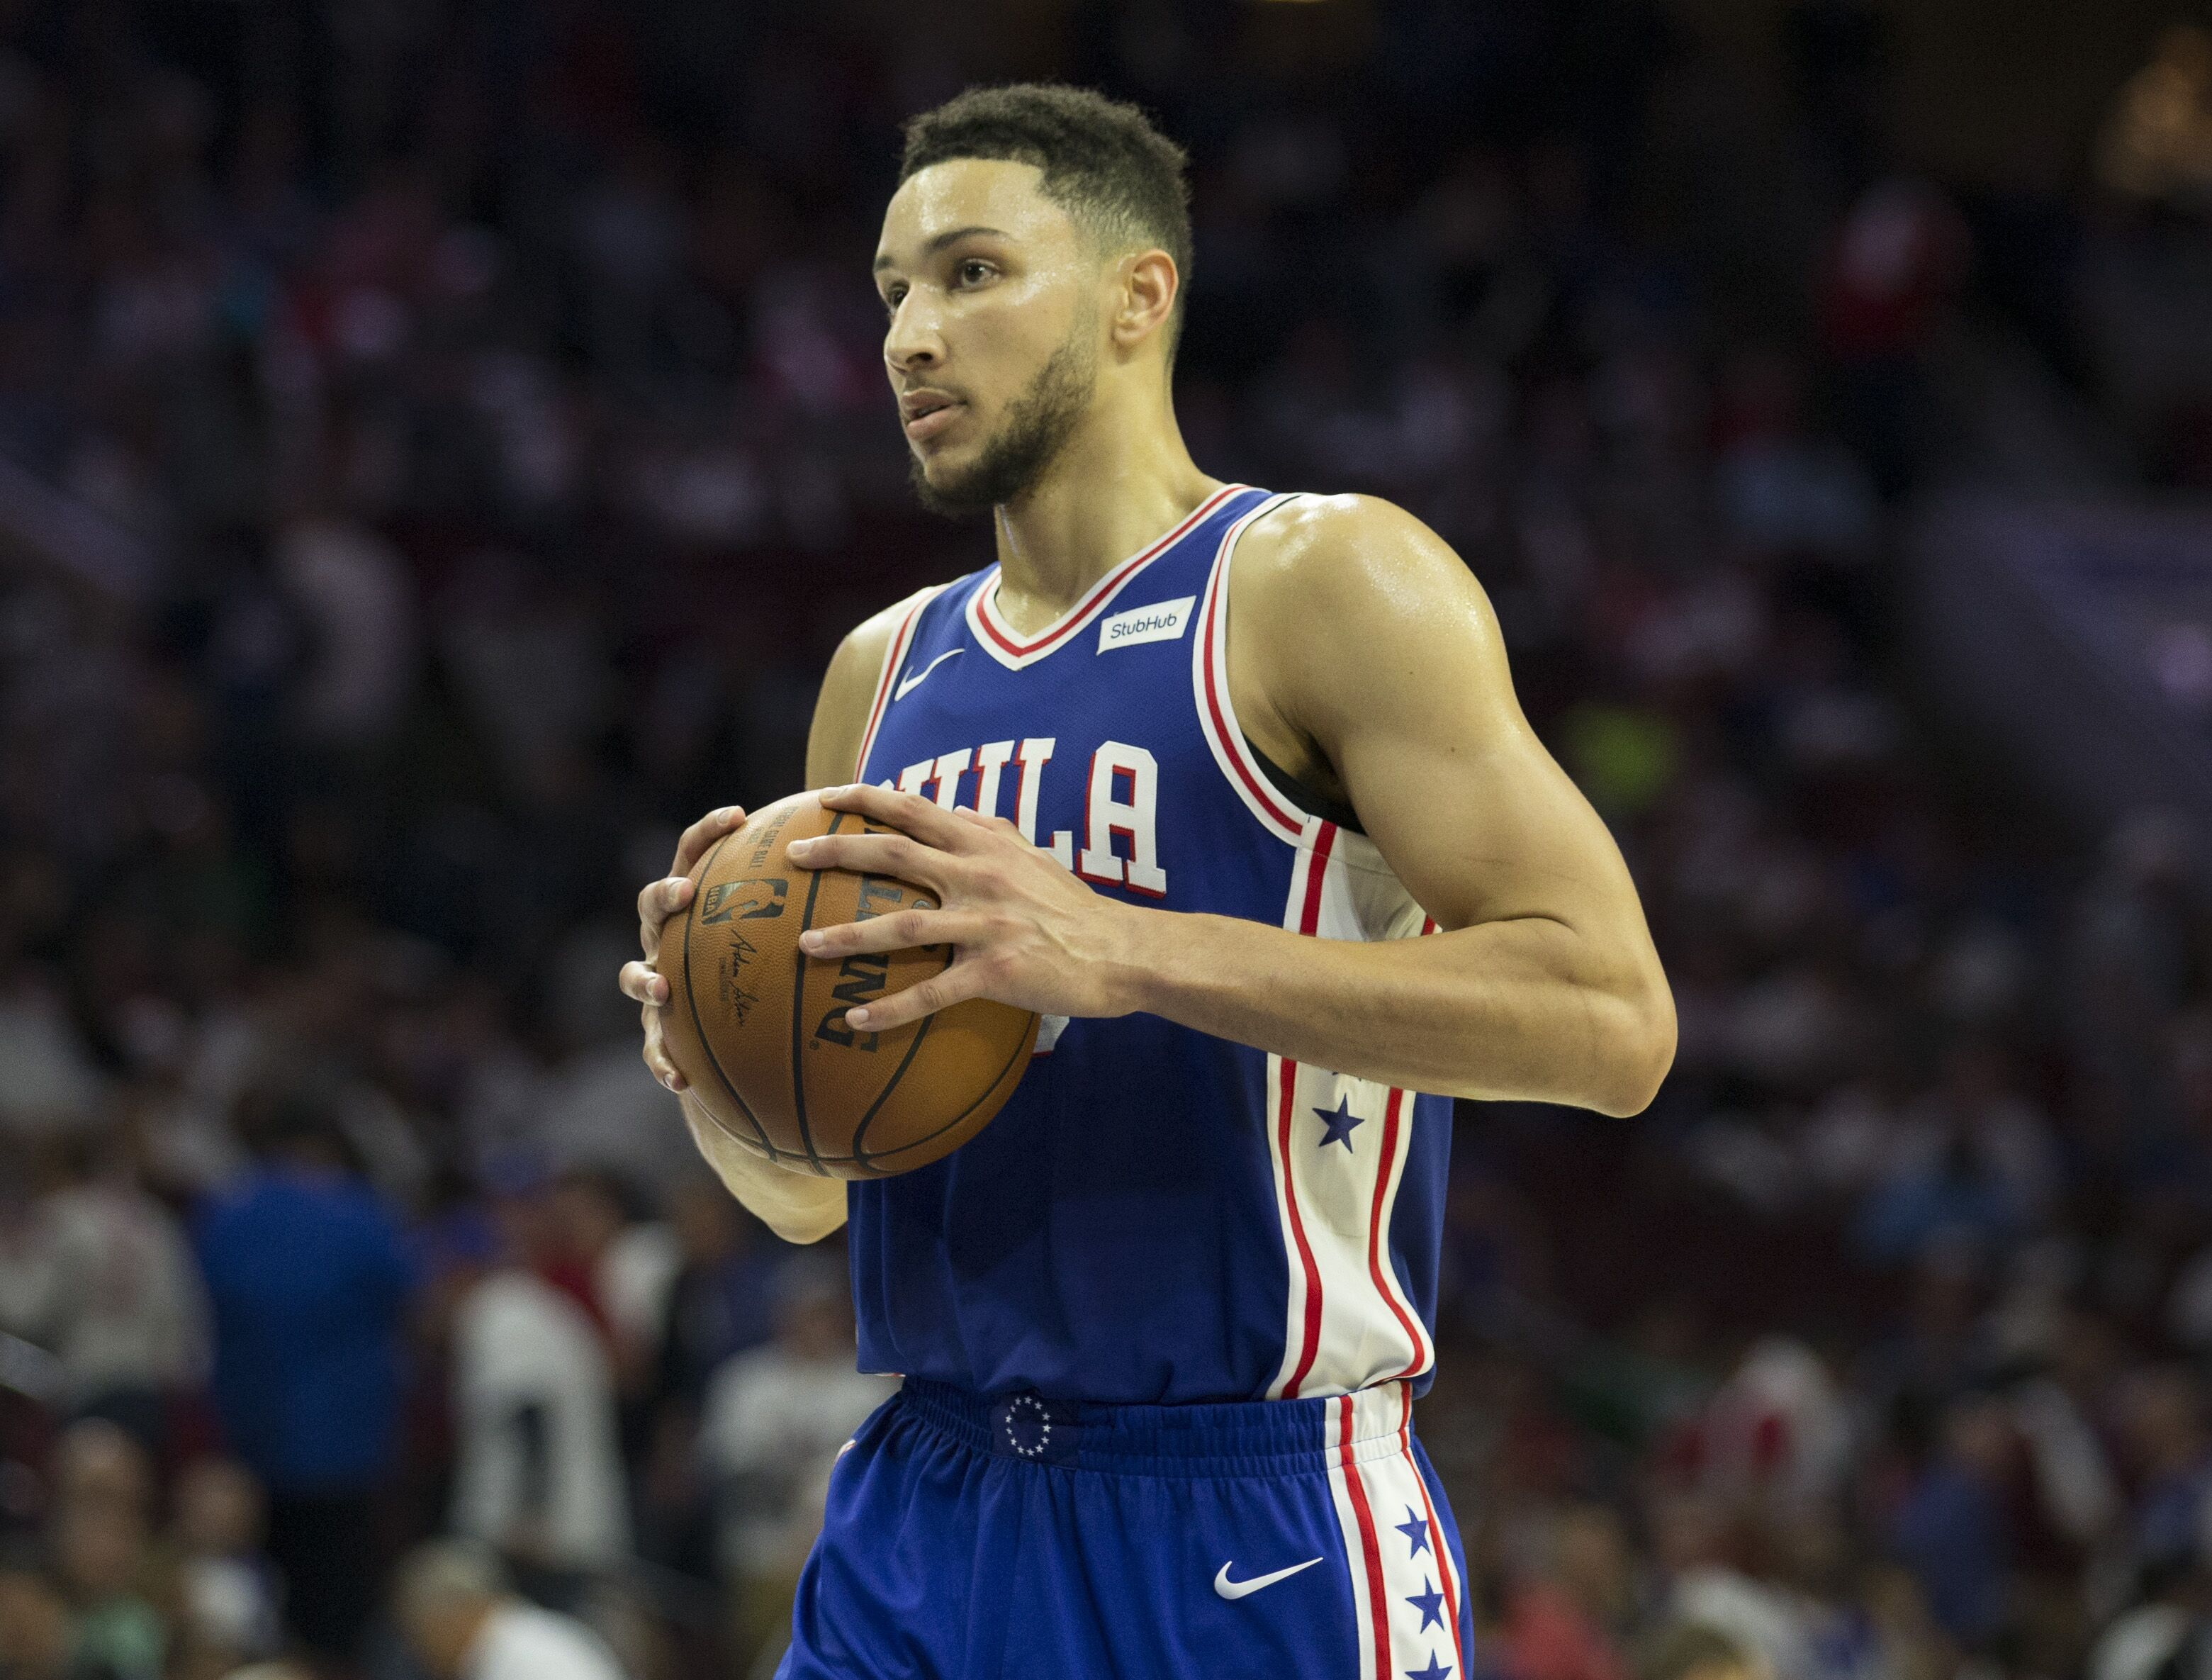 Using Both The Eye Test Andytics We Try To Determine Which Other Player In The Nba Is The Most Similar To The Philadelphia Ers Ben Simmons